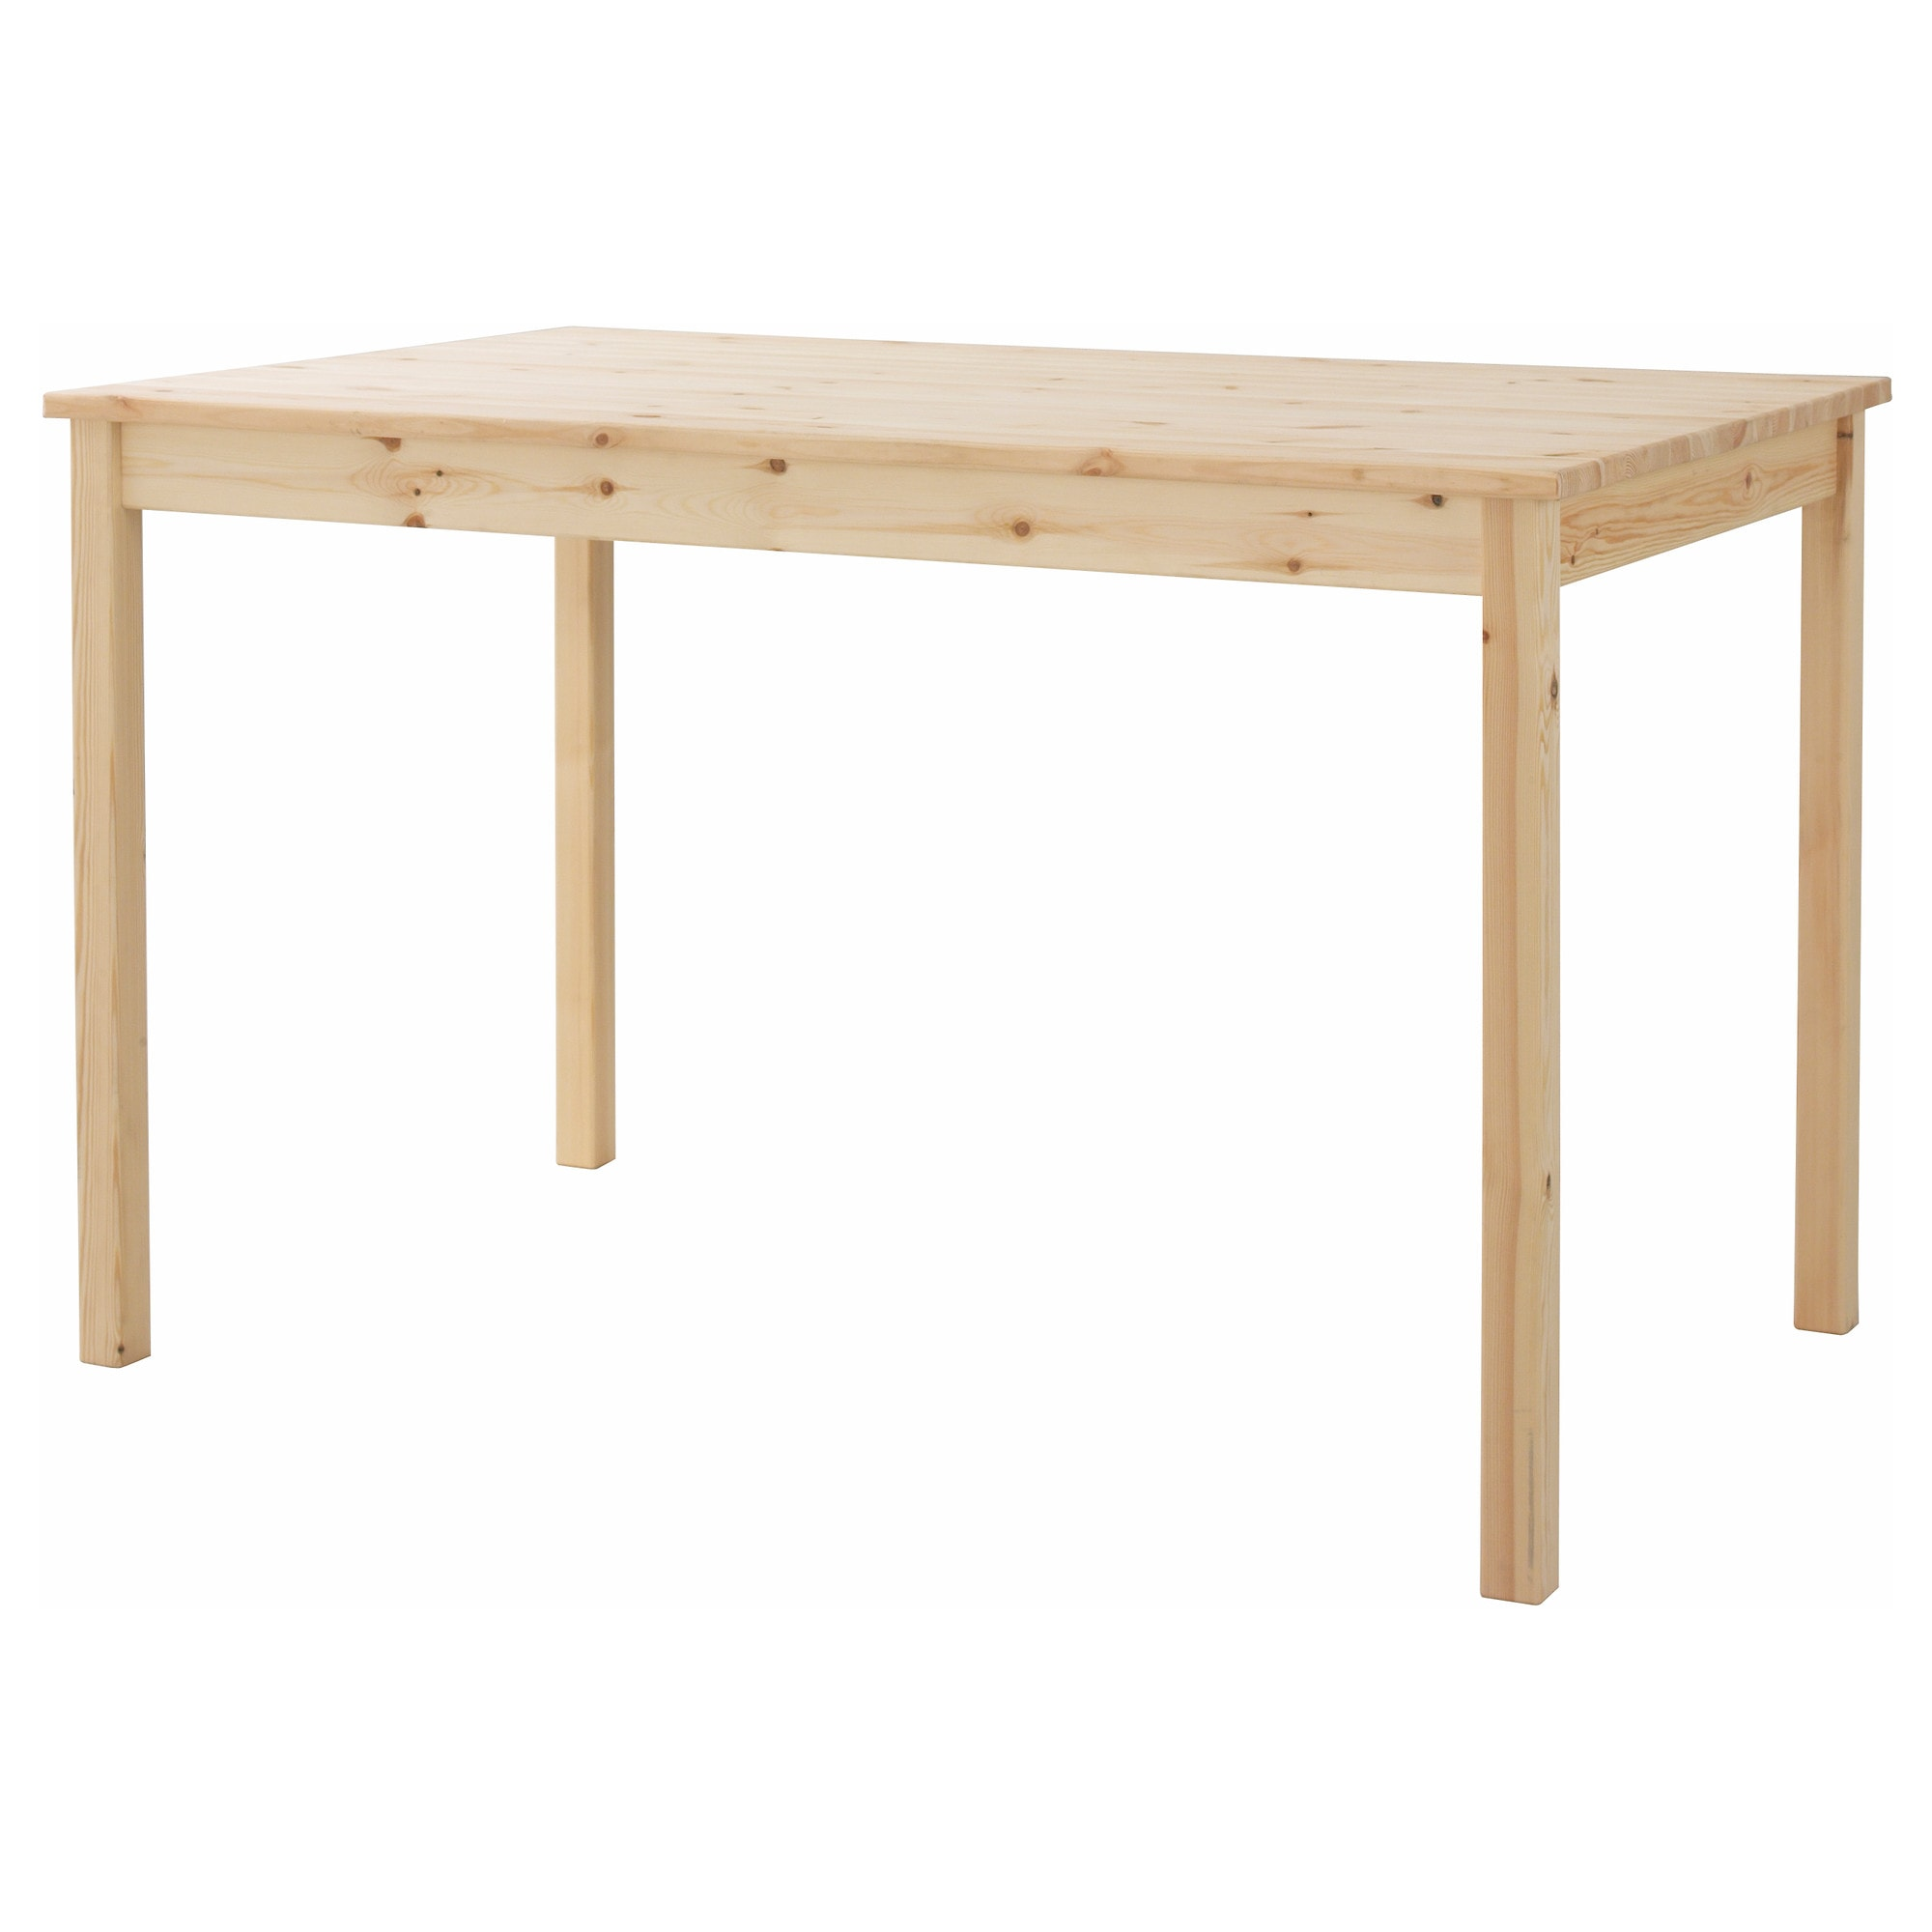 INGO table, pine Length: 47 1/4